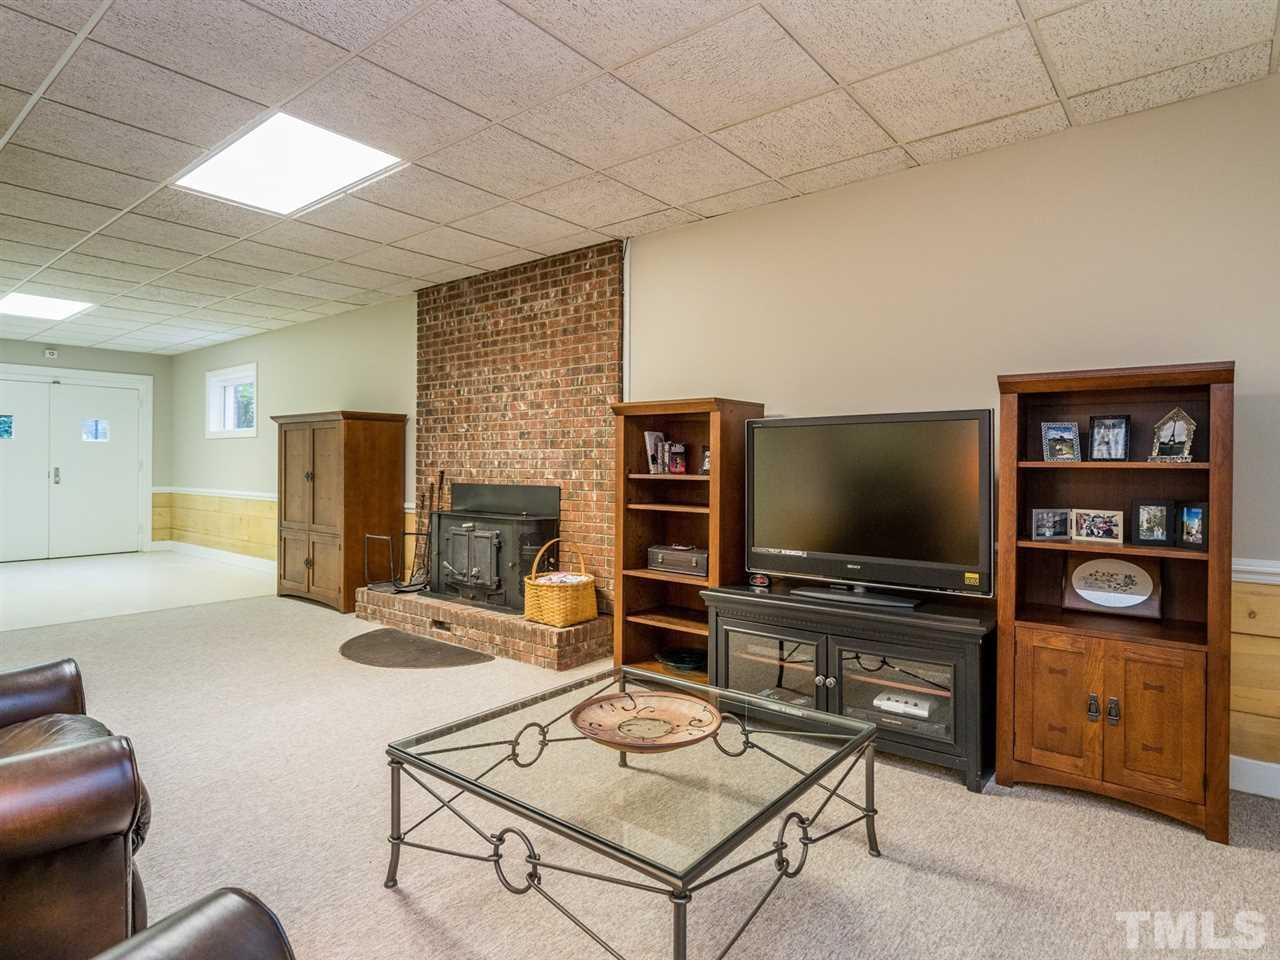 The bonus room is quite spacious and boasts a wood stove.